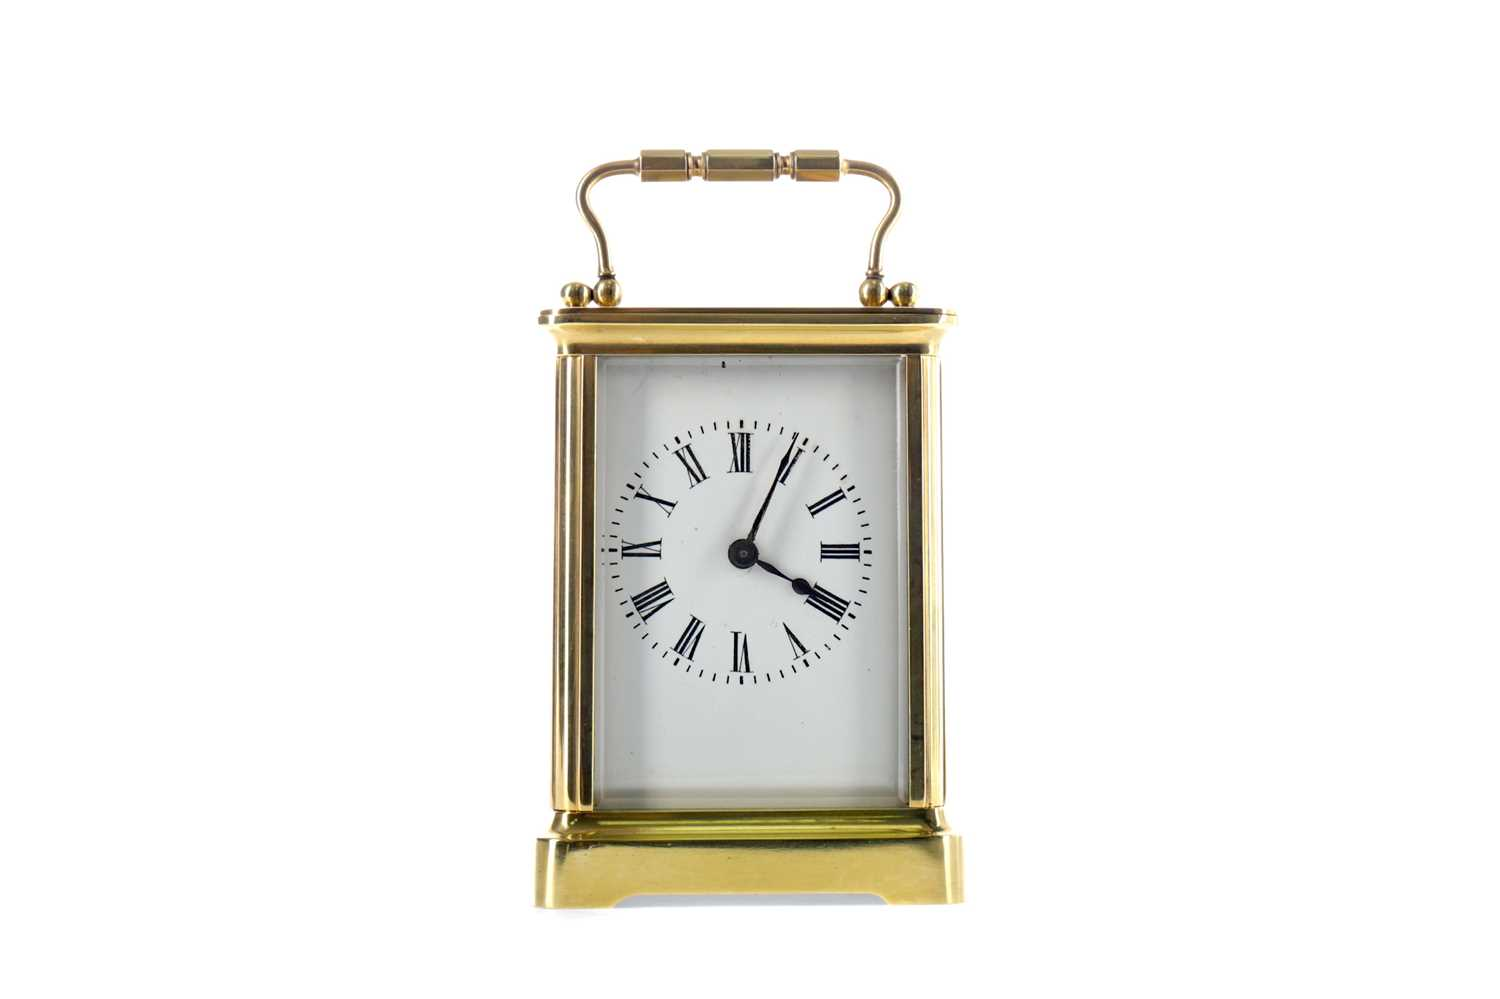 Lot 1759 - AN EARLY 20TH CENTURY CARRIAGE CLOCK